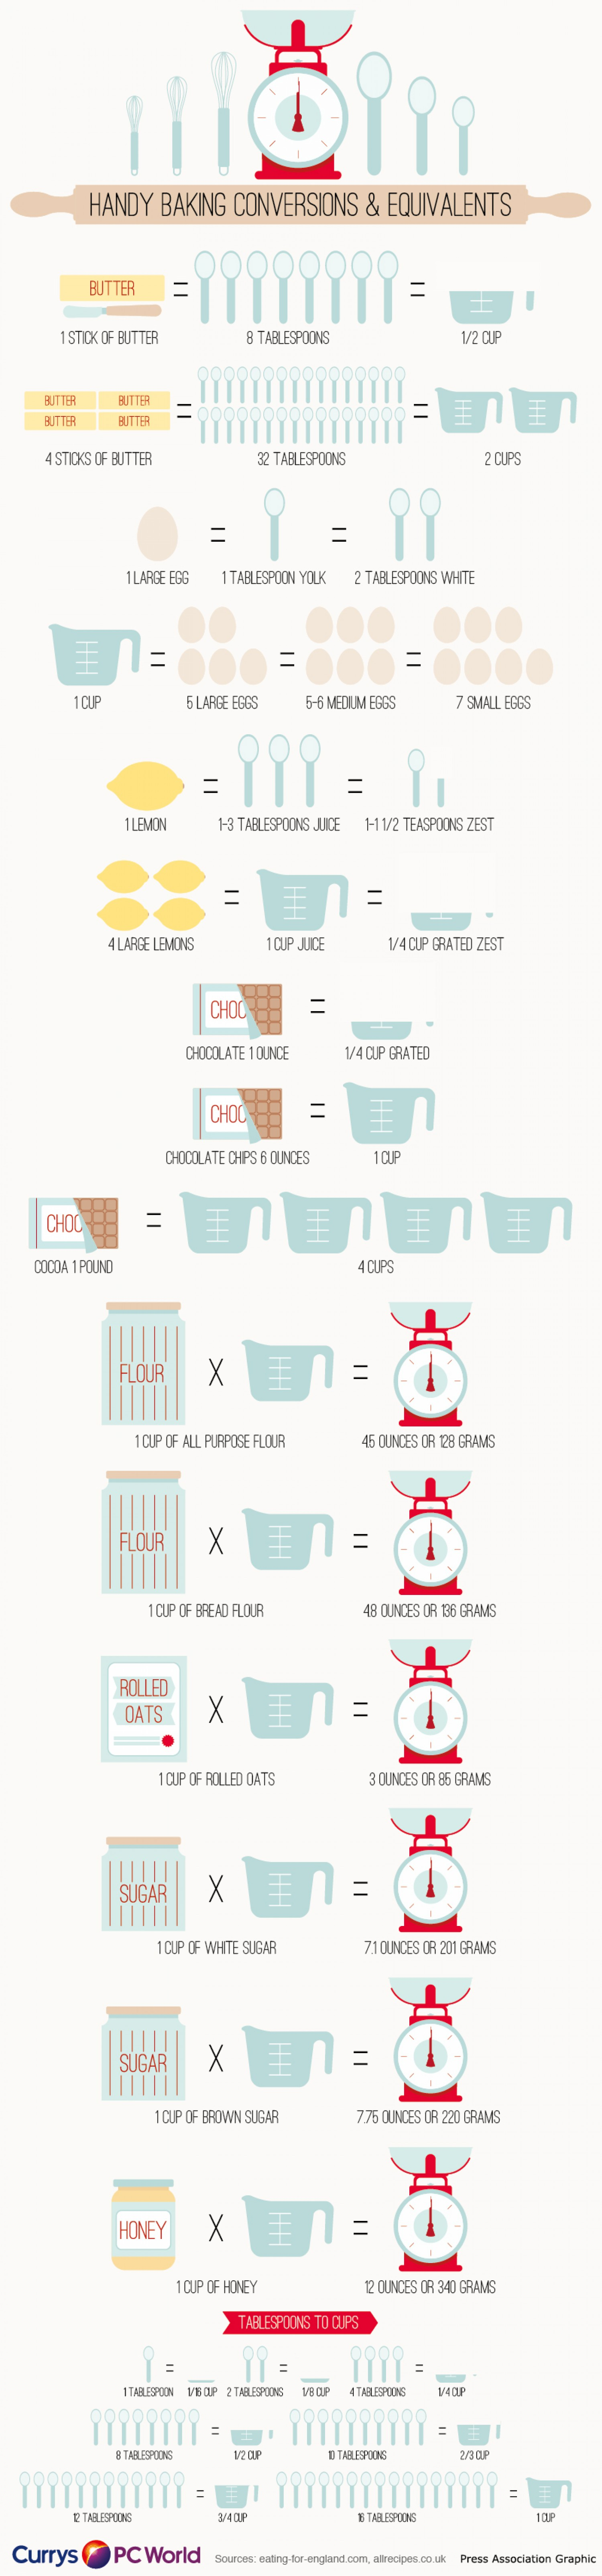 Kitchen Conversions For Baking